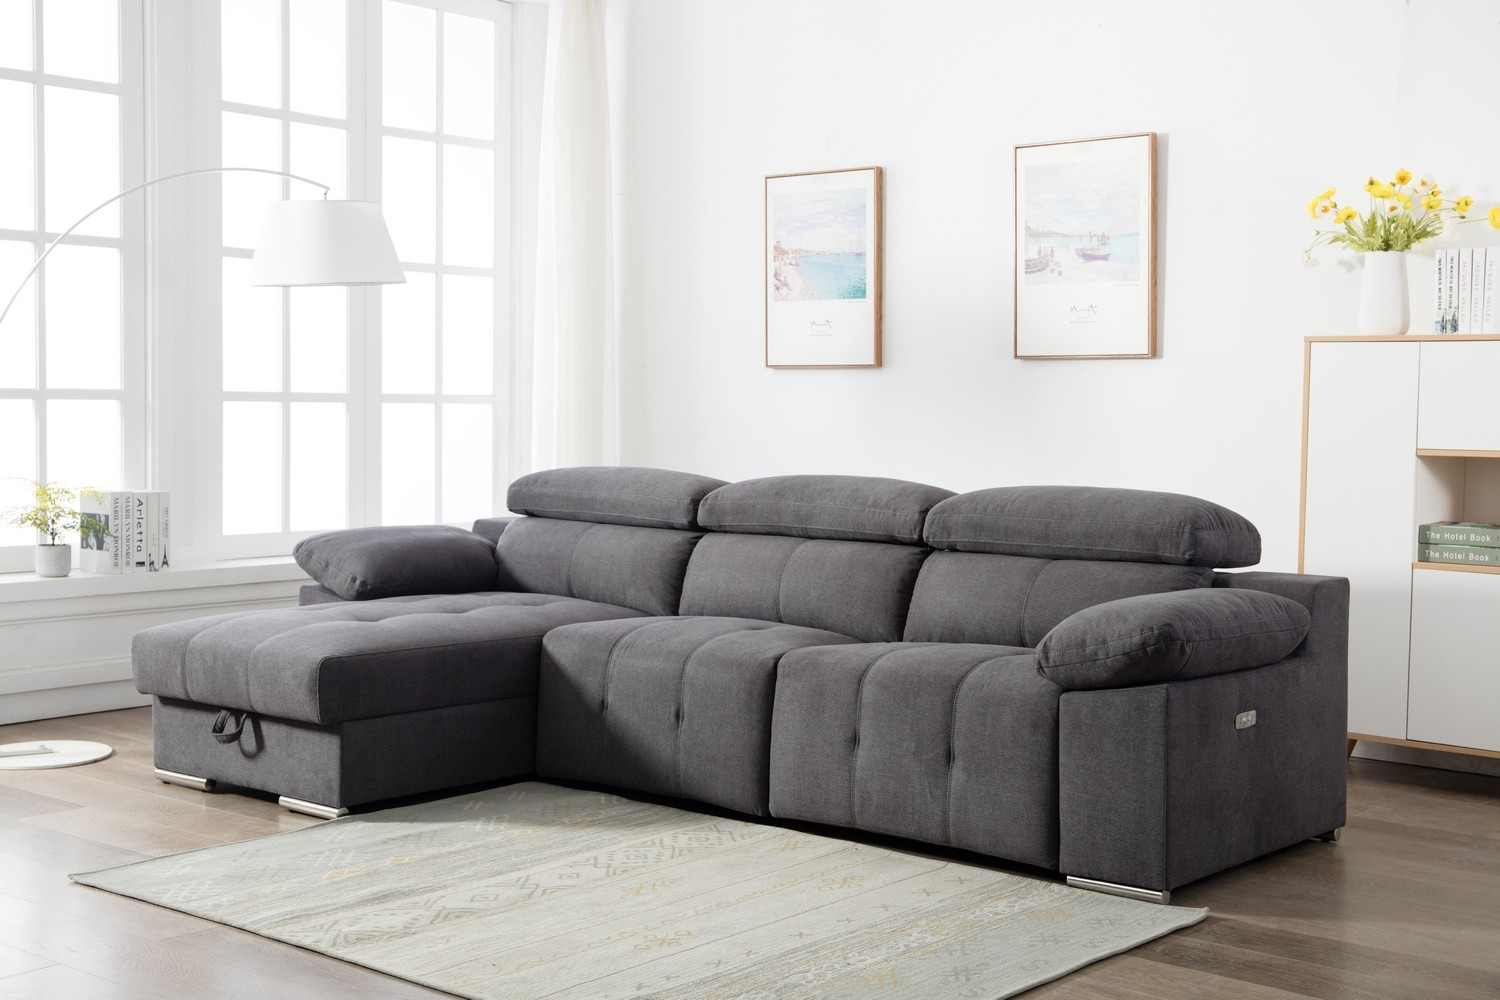 Sabrina Grey Left Chaise Reclining Sectional with Storage